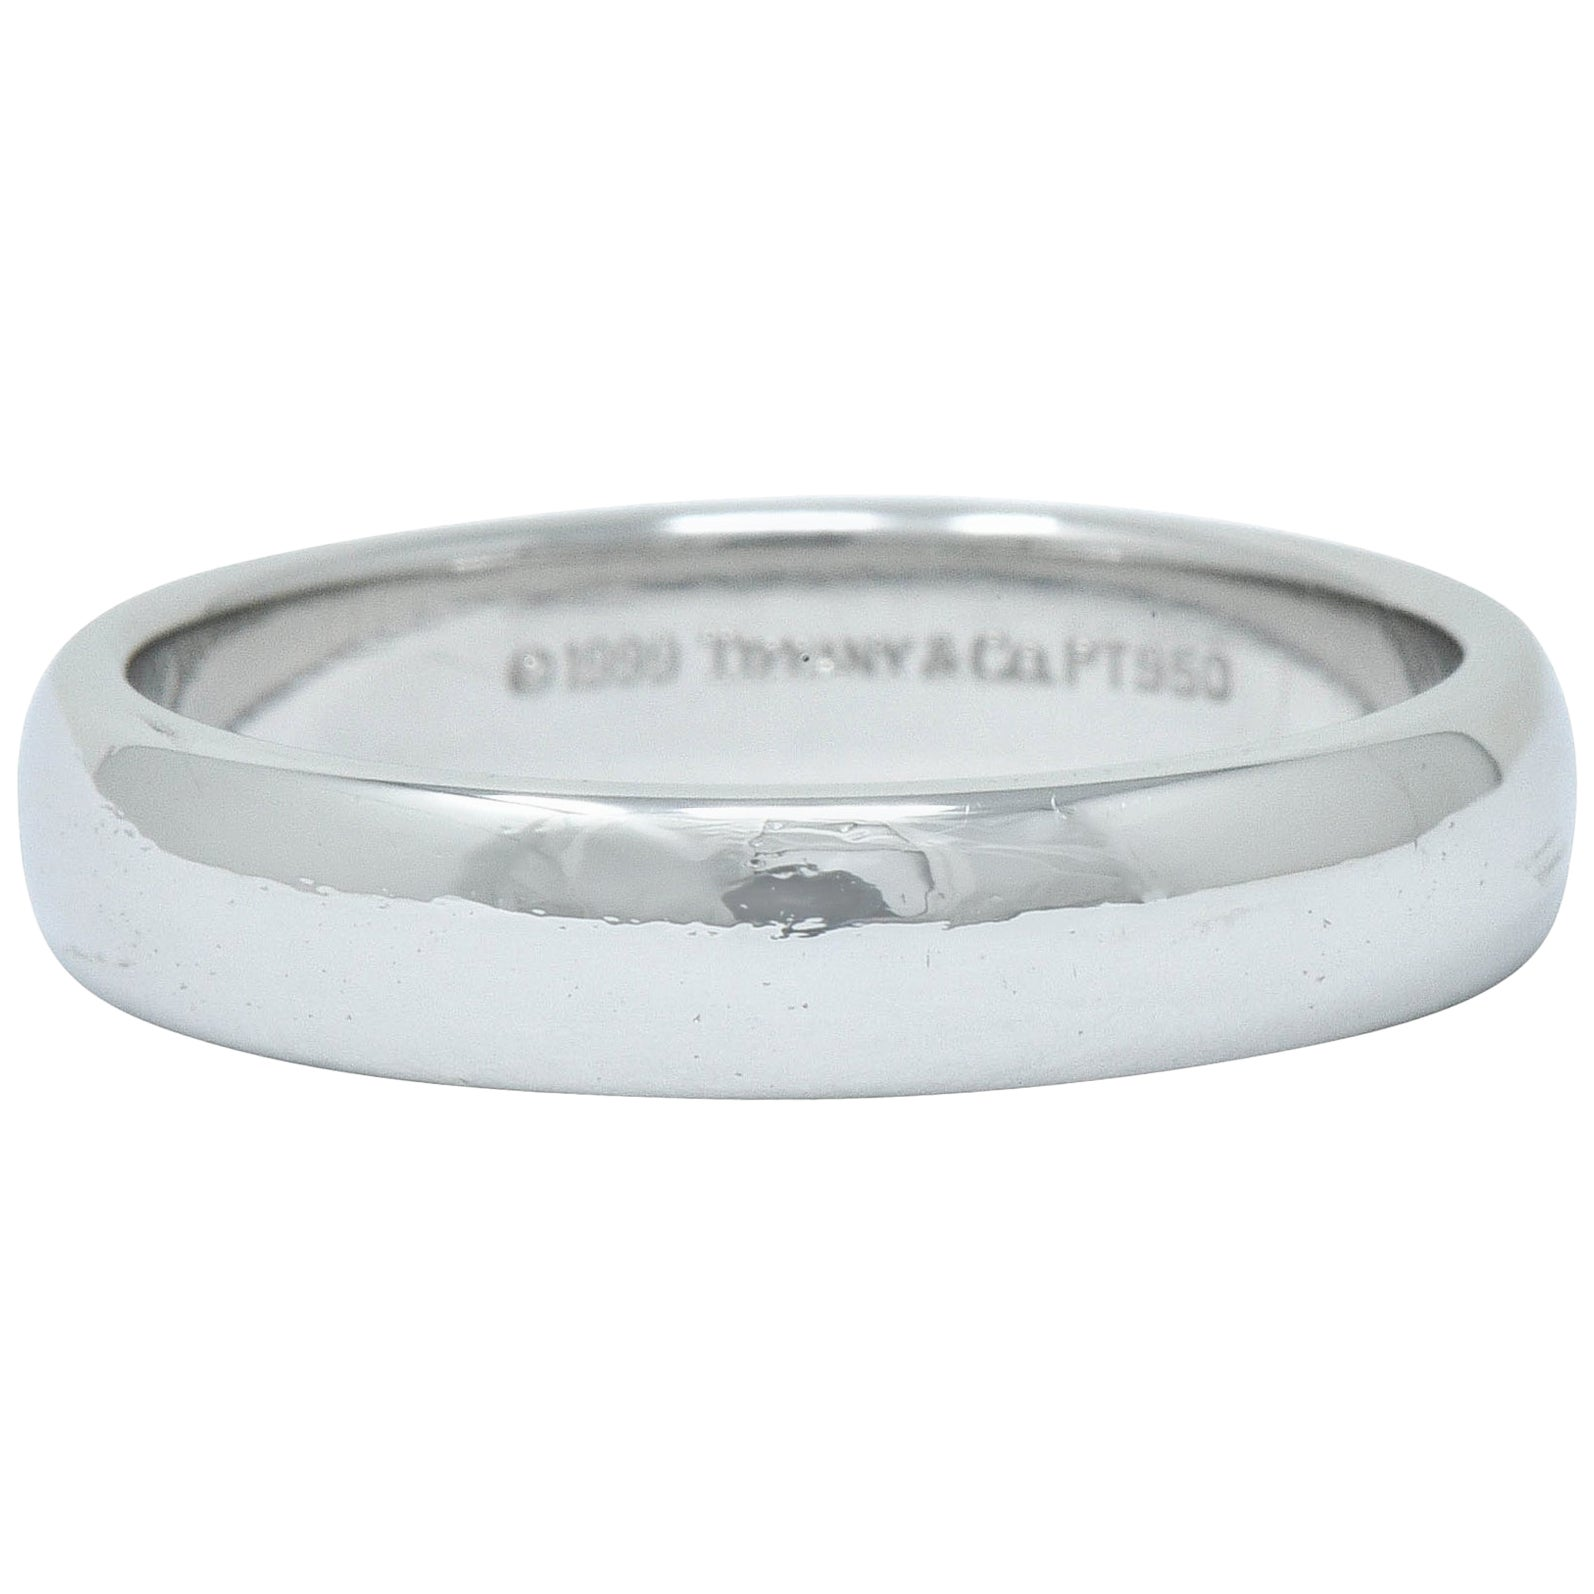 Tiffany & Co. Platinum Men's Wedding Band Ring